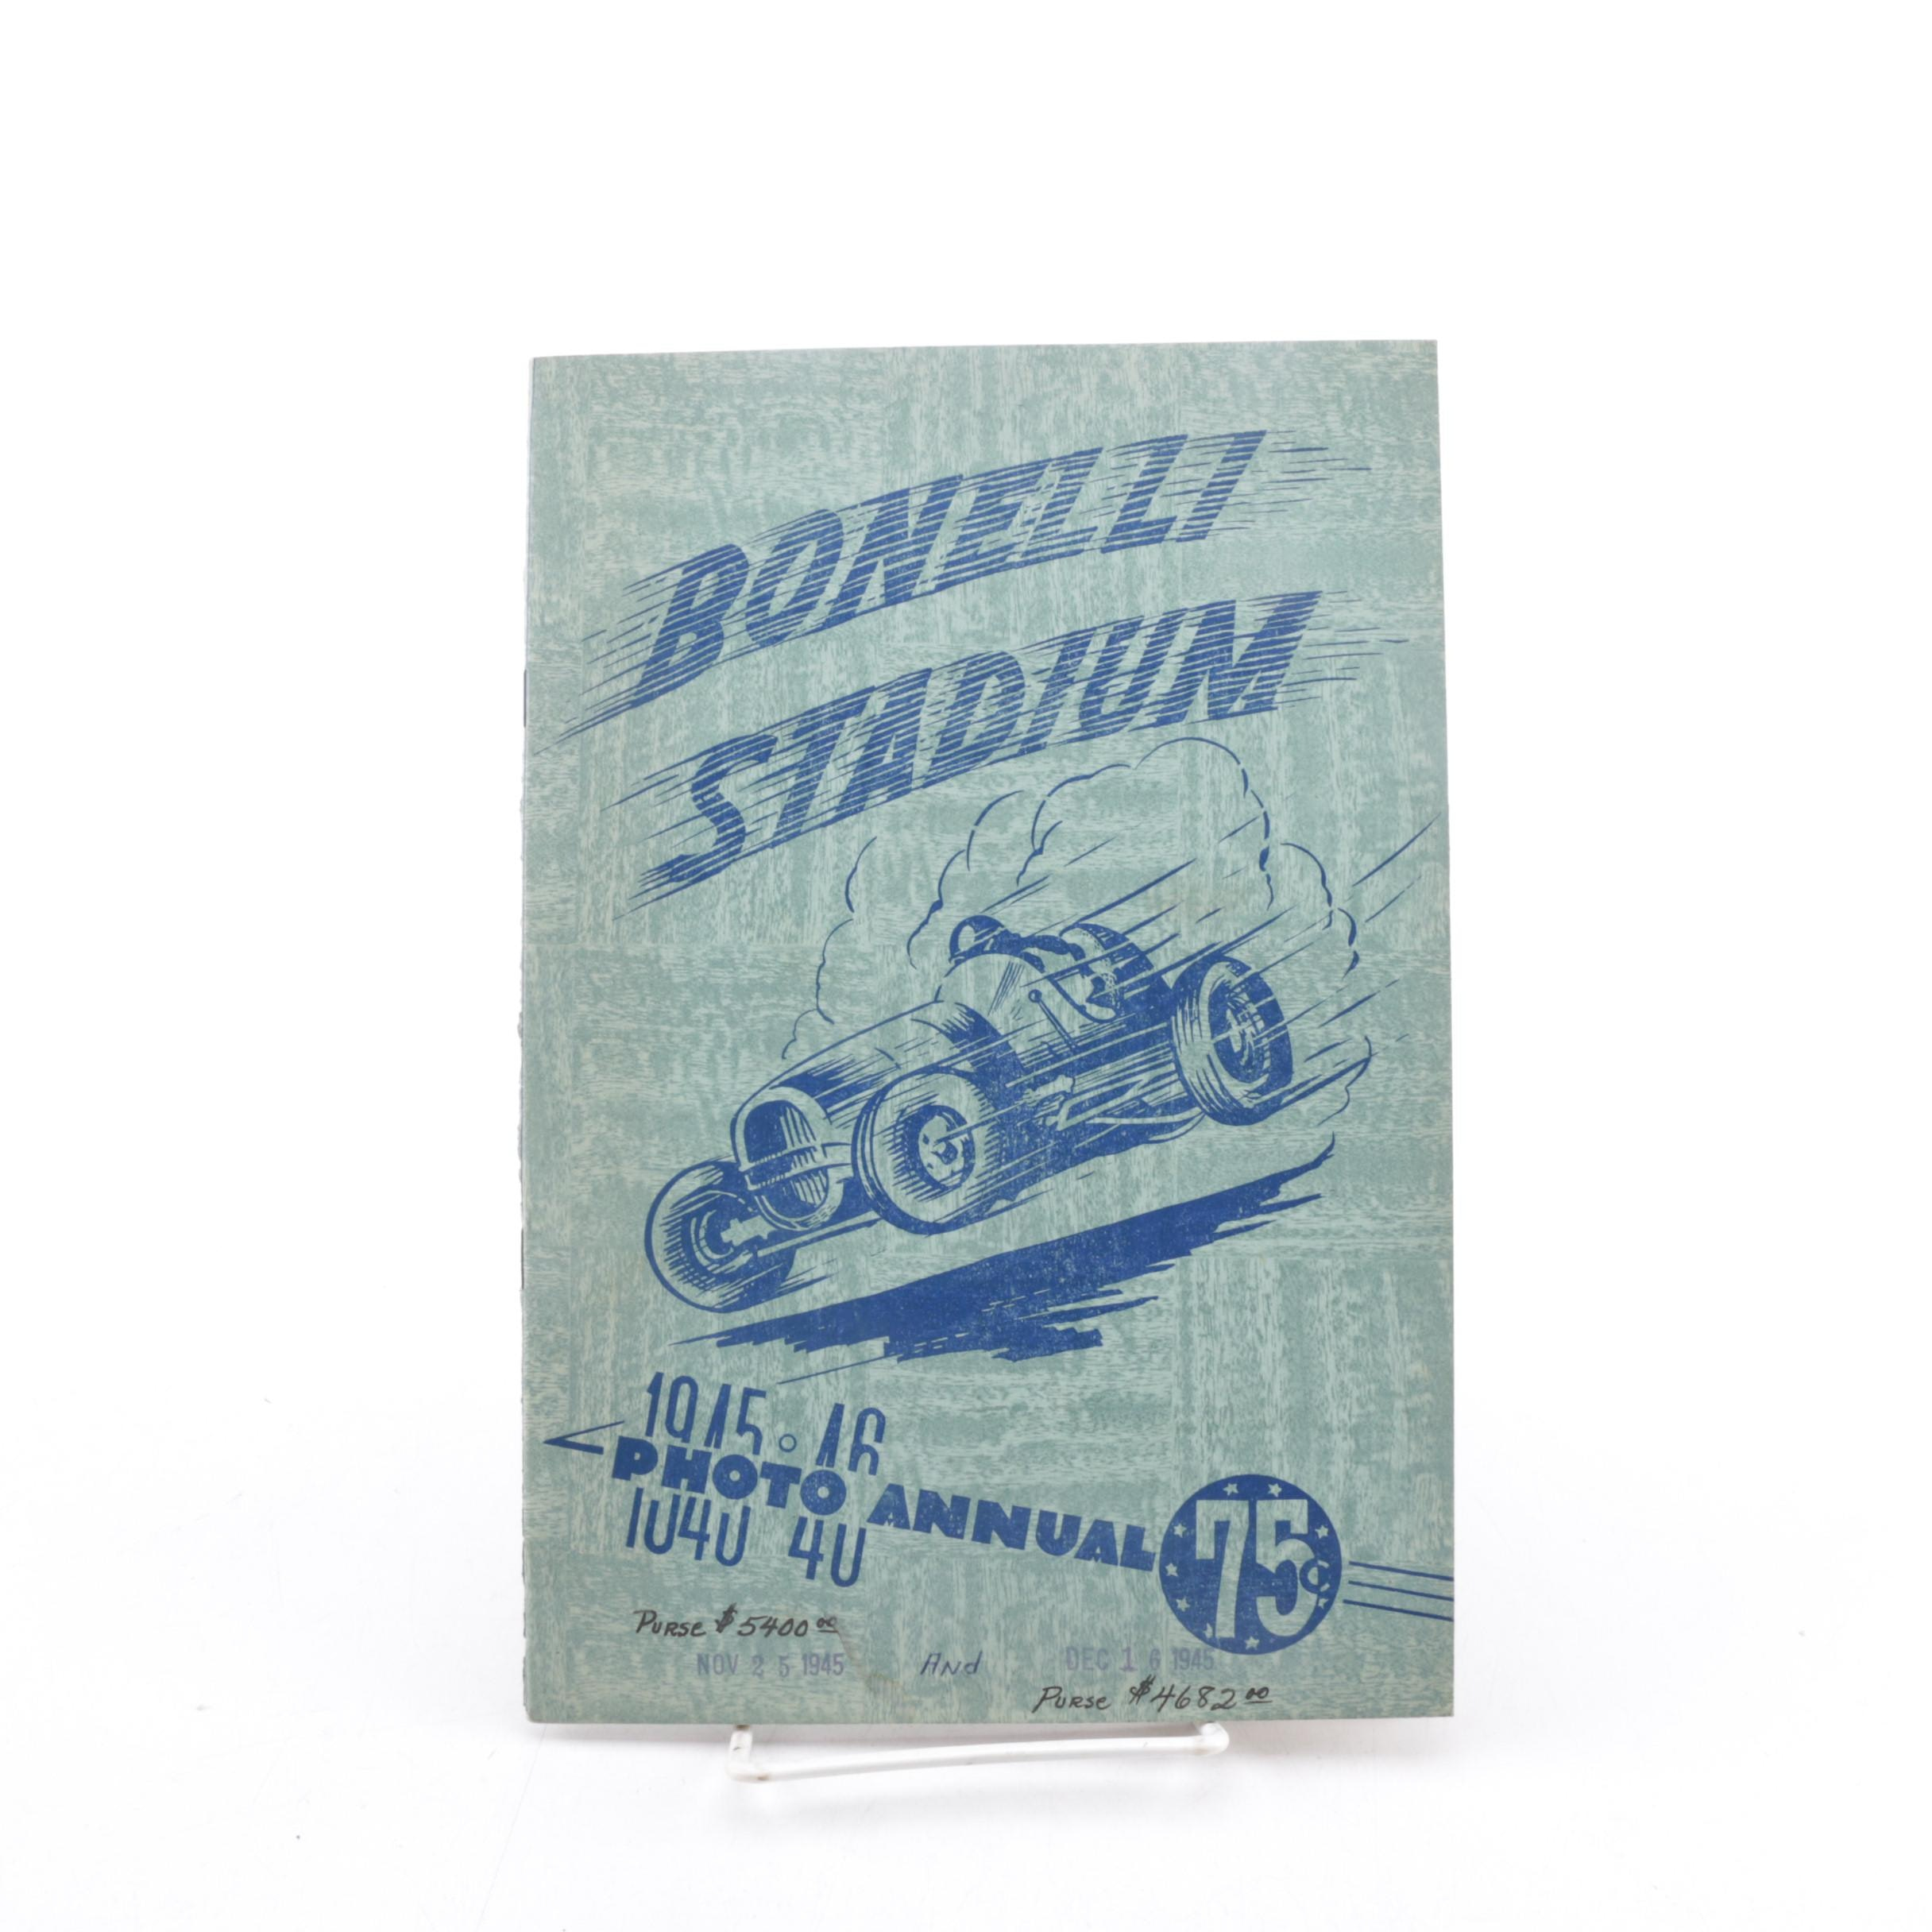 "1945 ""Bonelli Stadium 1945 - 1946 Photo Annual"" Magazine"